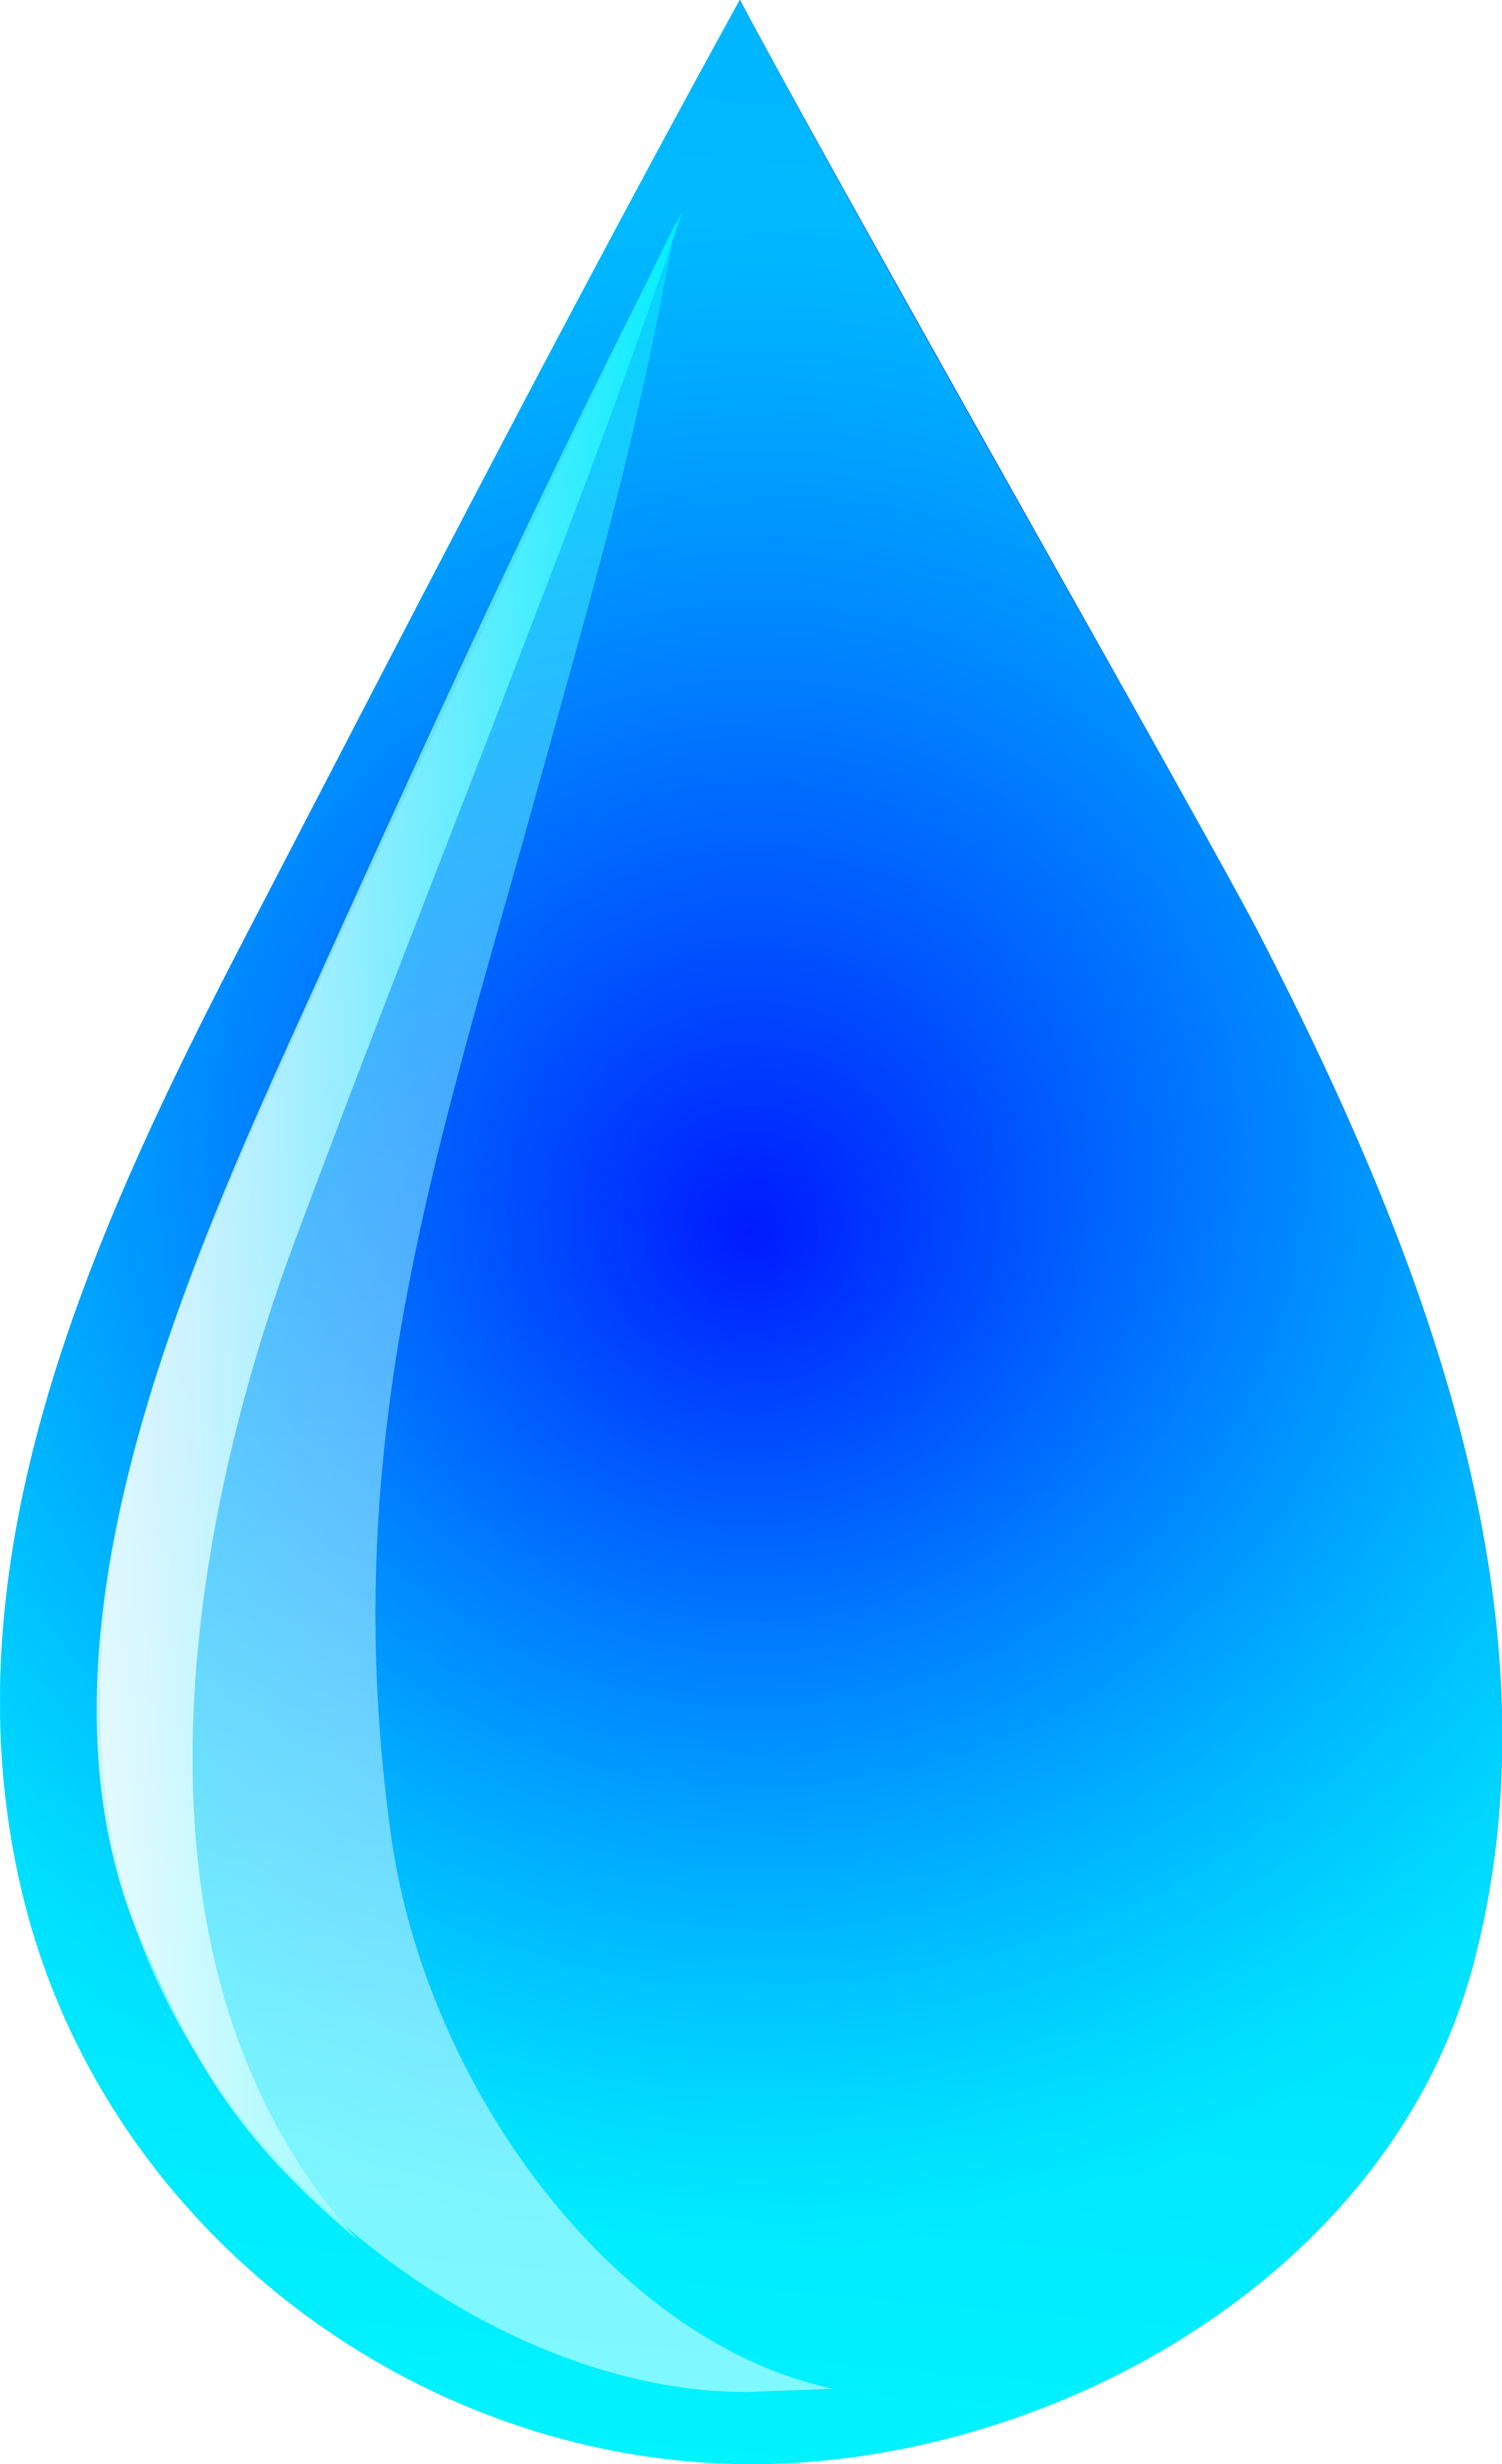 Water Drop Icon-Water Drop Icon-11